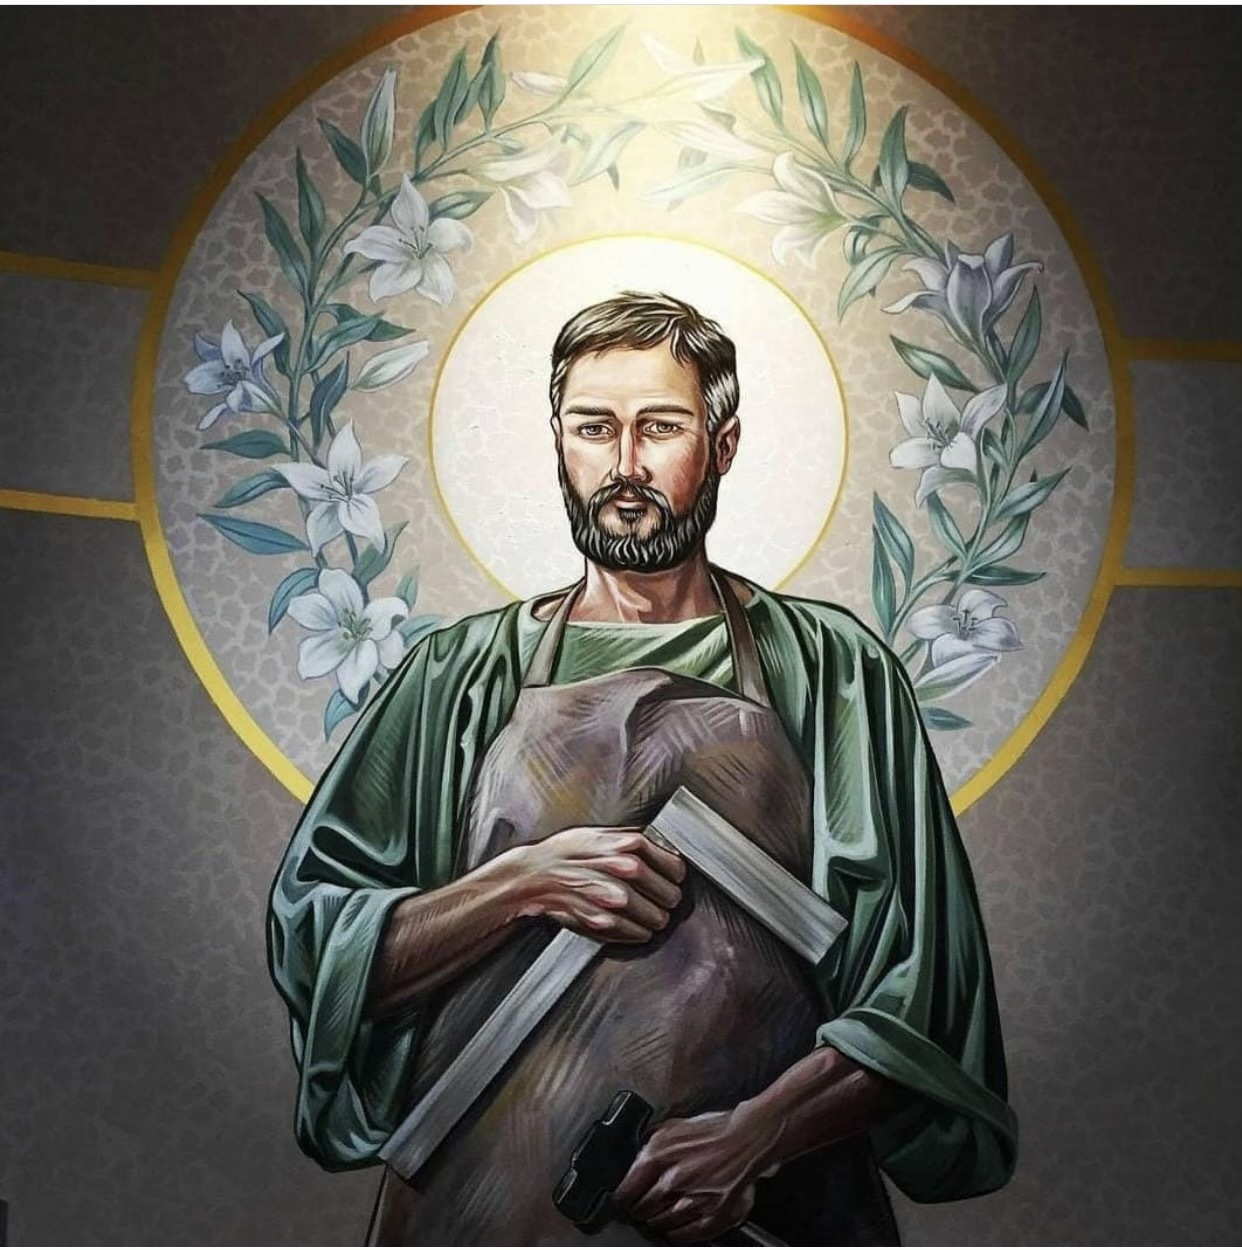 Annual Labor Day Triduum & Mass Honoring St. Joseph the WorkerSeptember 3 - 4 - 5, 2021Masses each evening at 7:00pm, followed by devotions.Triduum preachers:Friday - Deacon Jim RoseSaturday - Deacon Andre' KabacinskiSunday - Deacon Alan BaranskiLABOR DAY MASSMonday, September 610:30amPrincipal Celebrant / Homilist: Rev. John V. PolednakDiocesan Vicar for ClergyConcelebrated by Oblate Priests